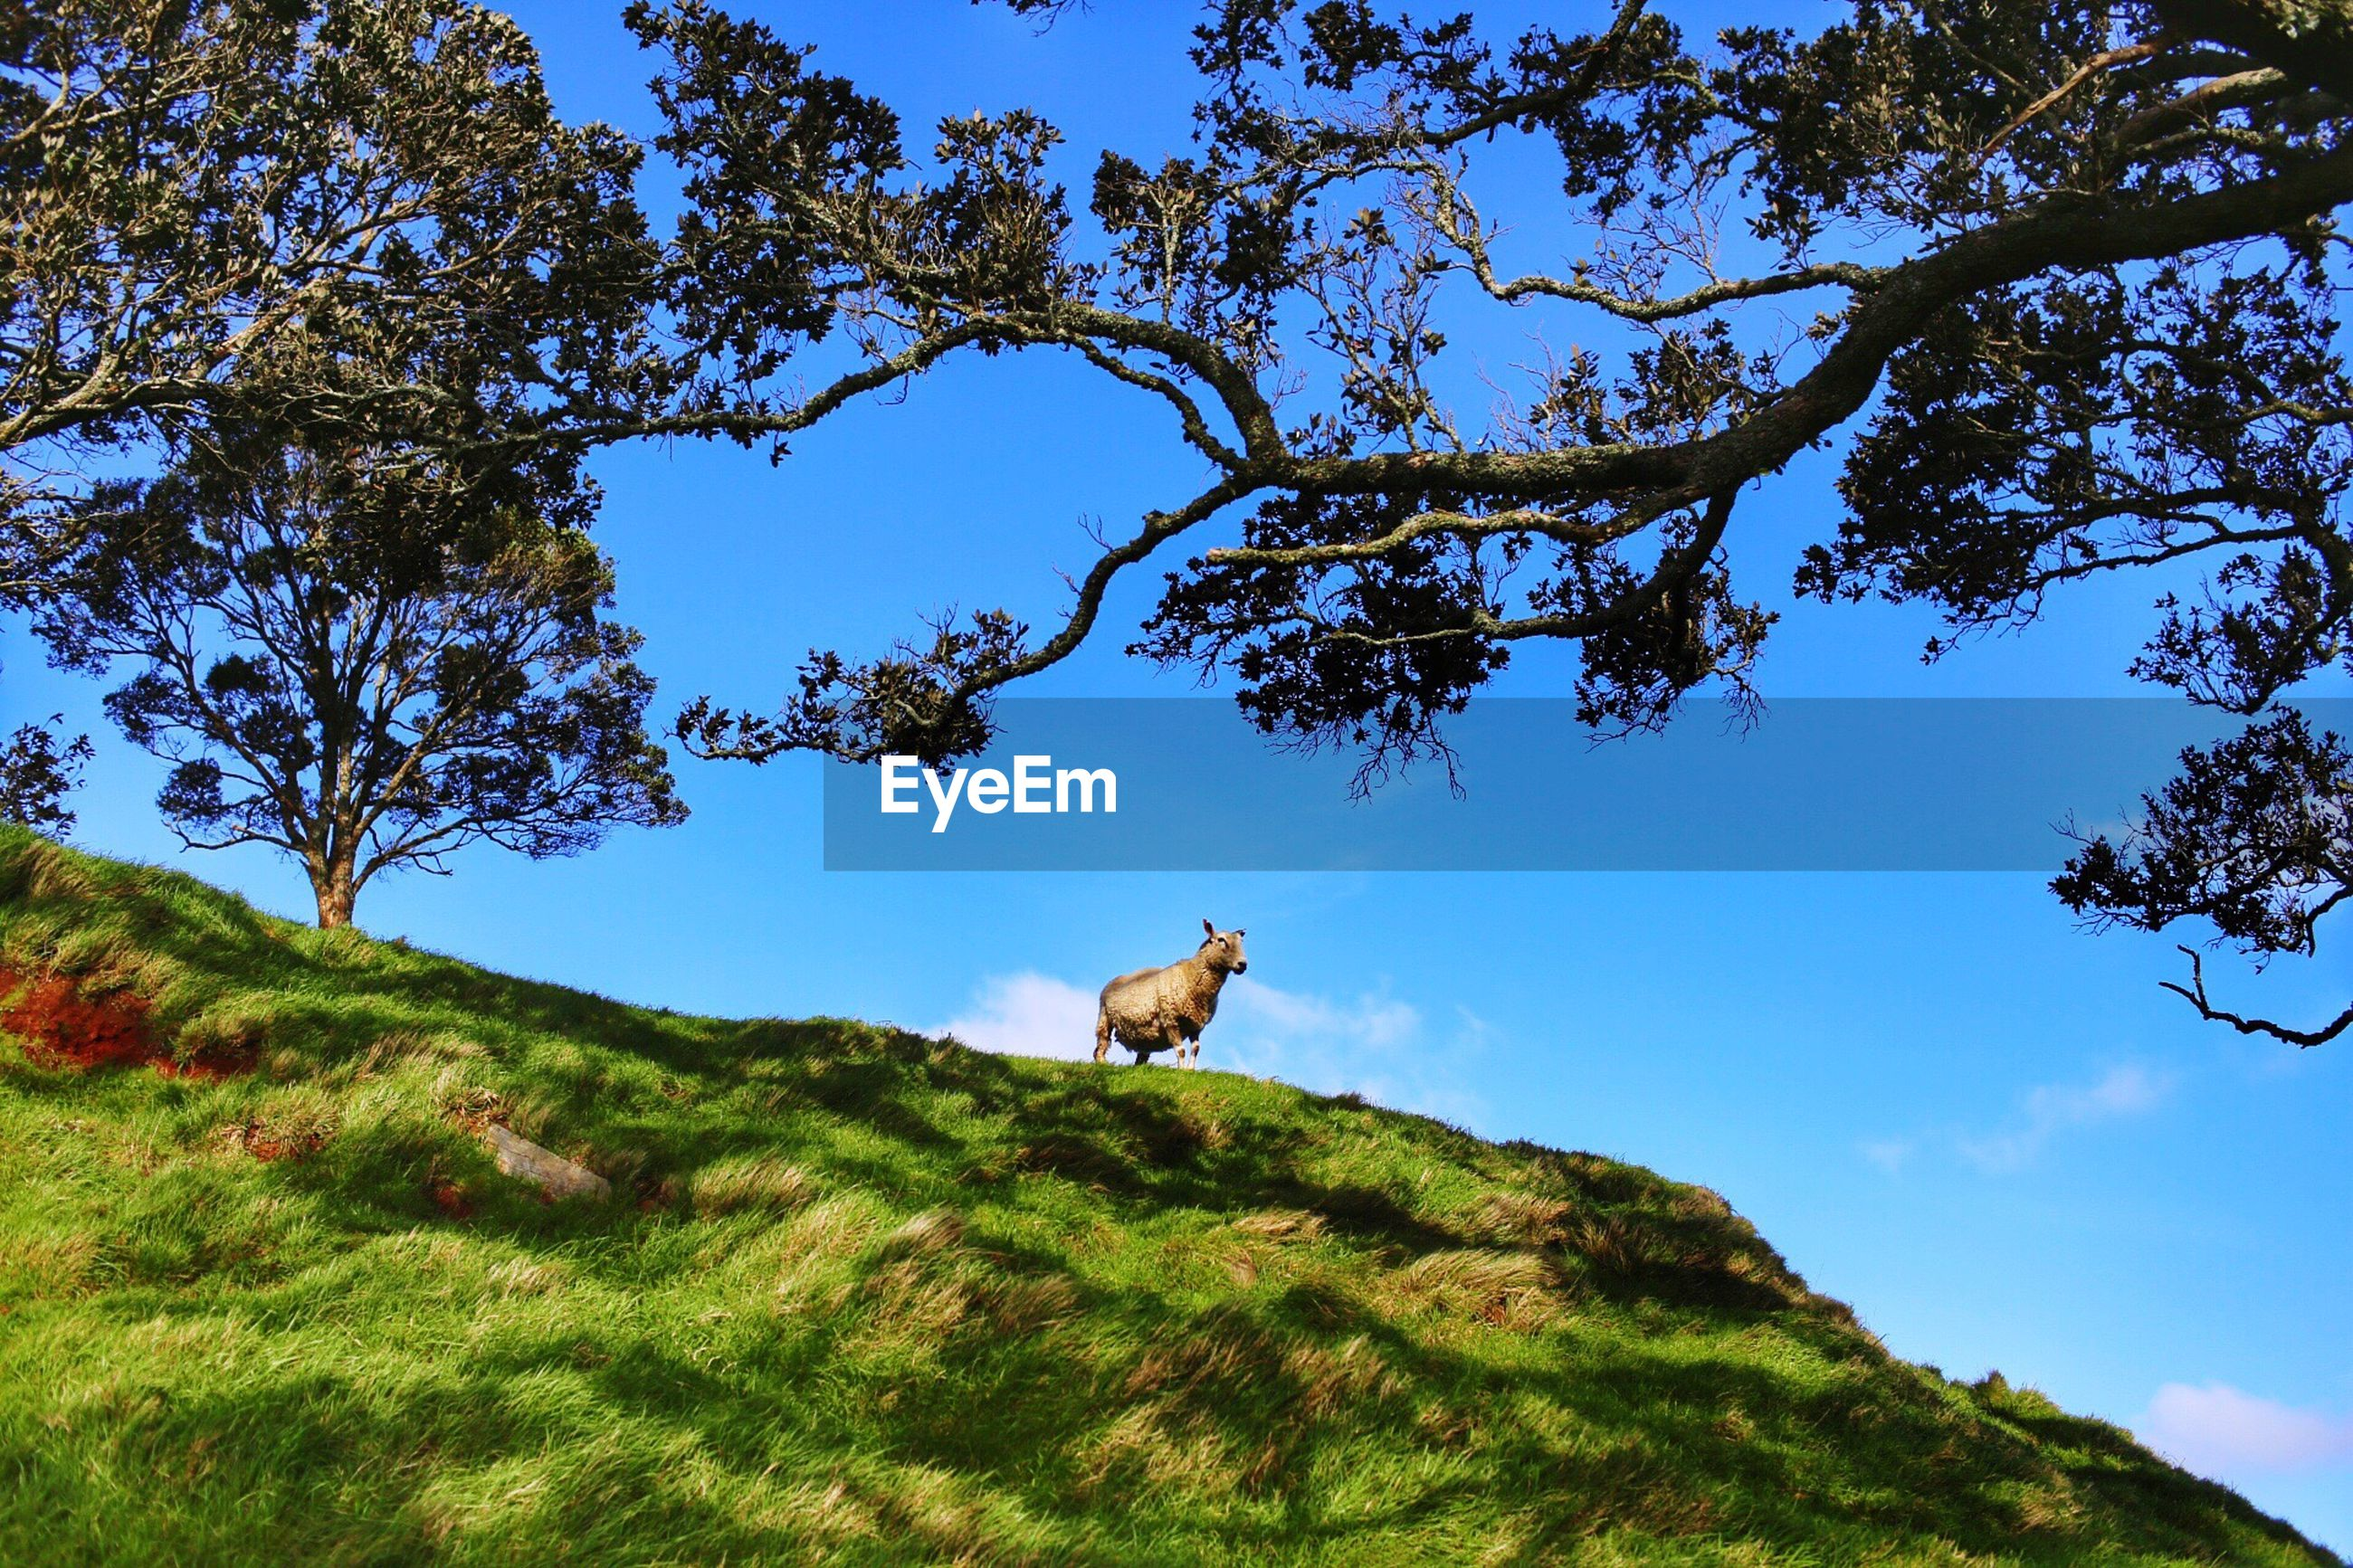 Low angle view of sheep on grassy hill against sky